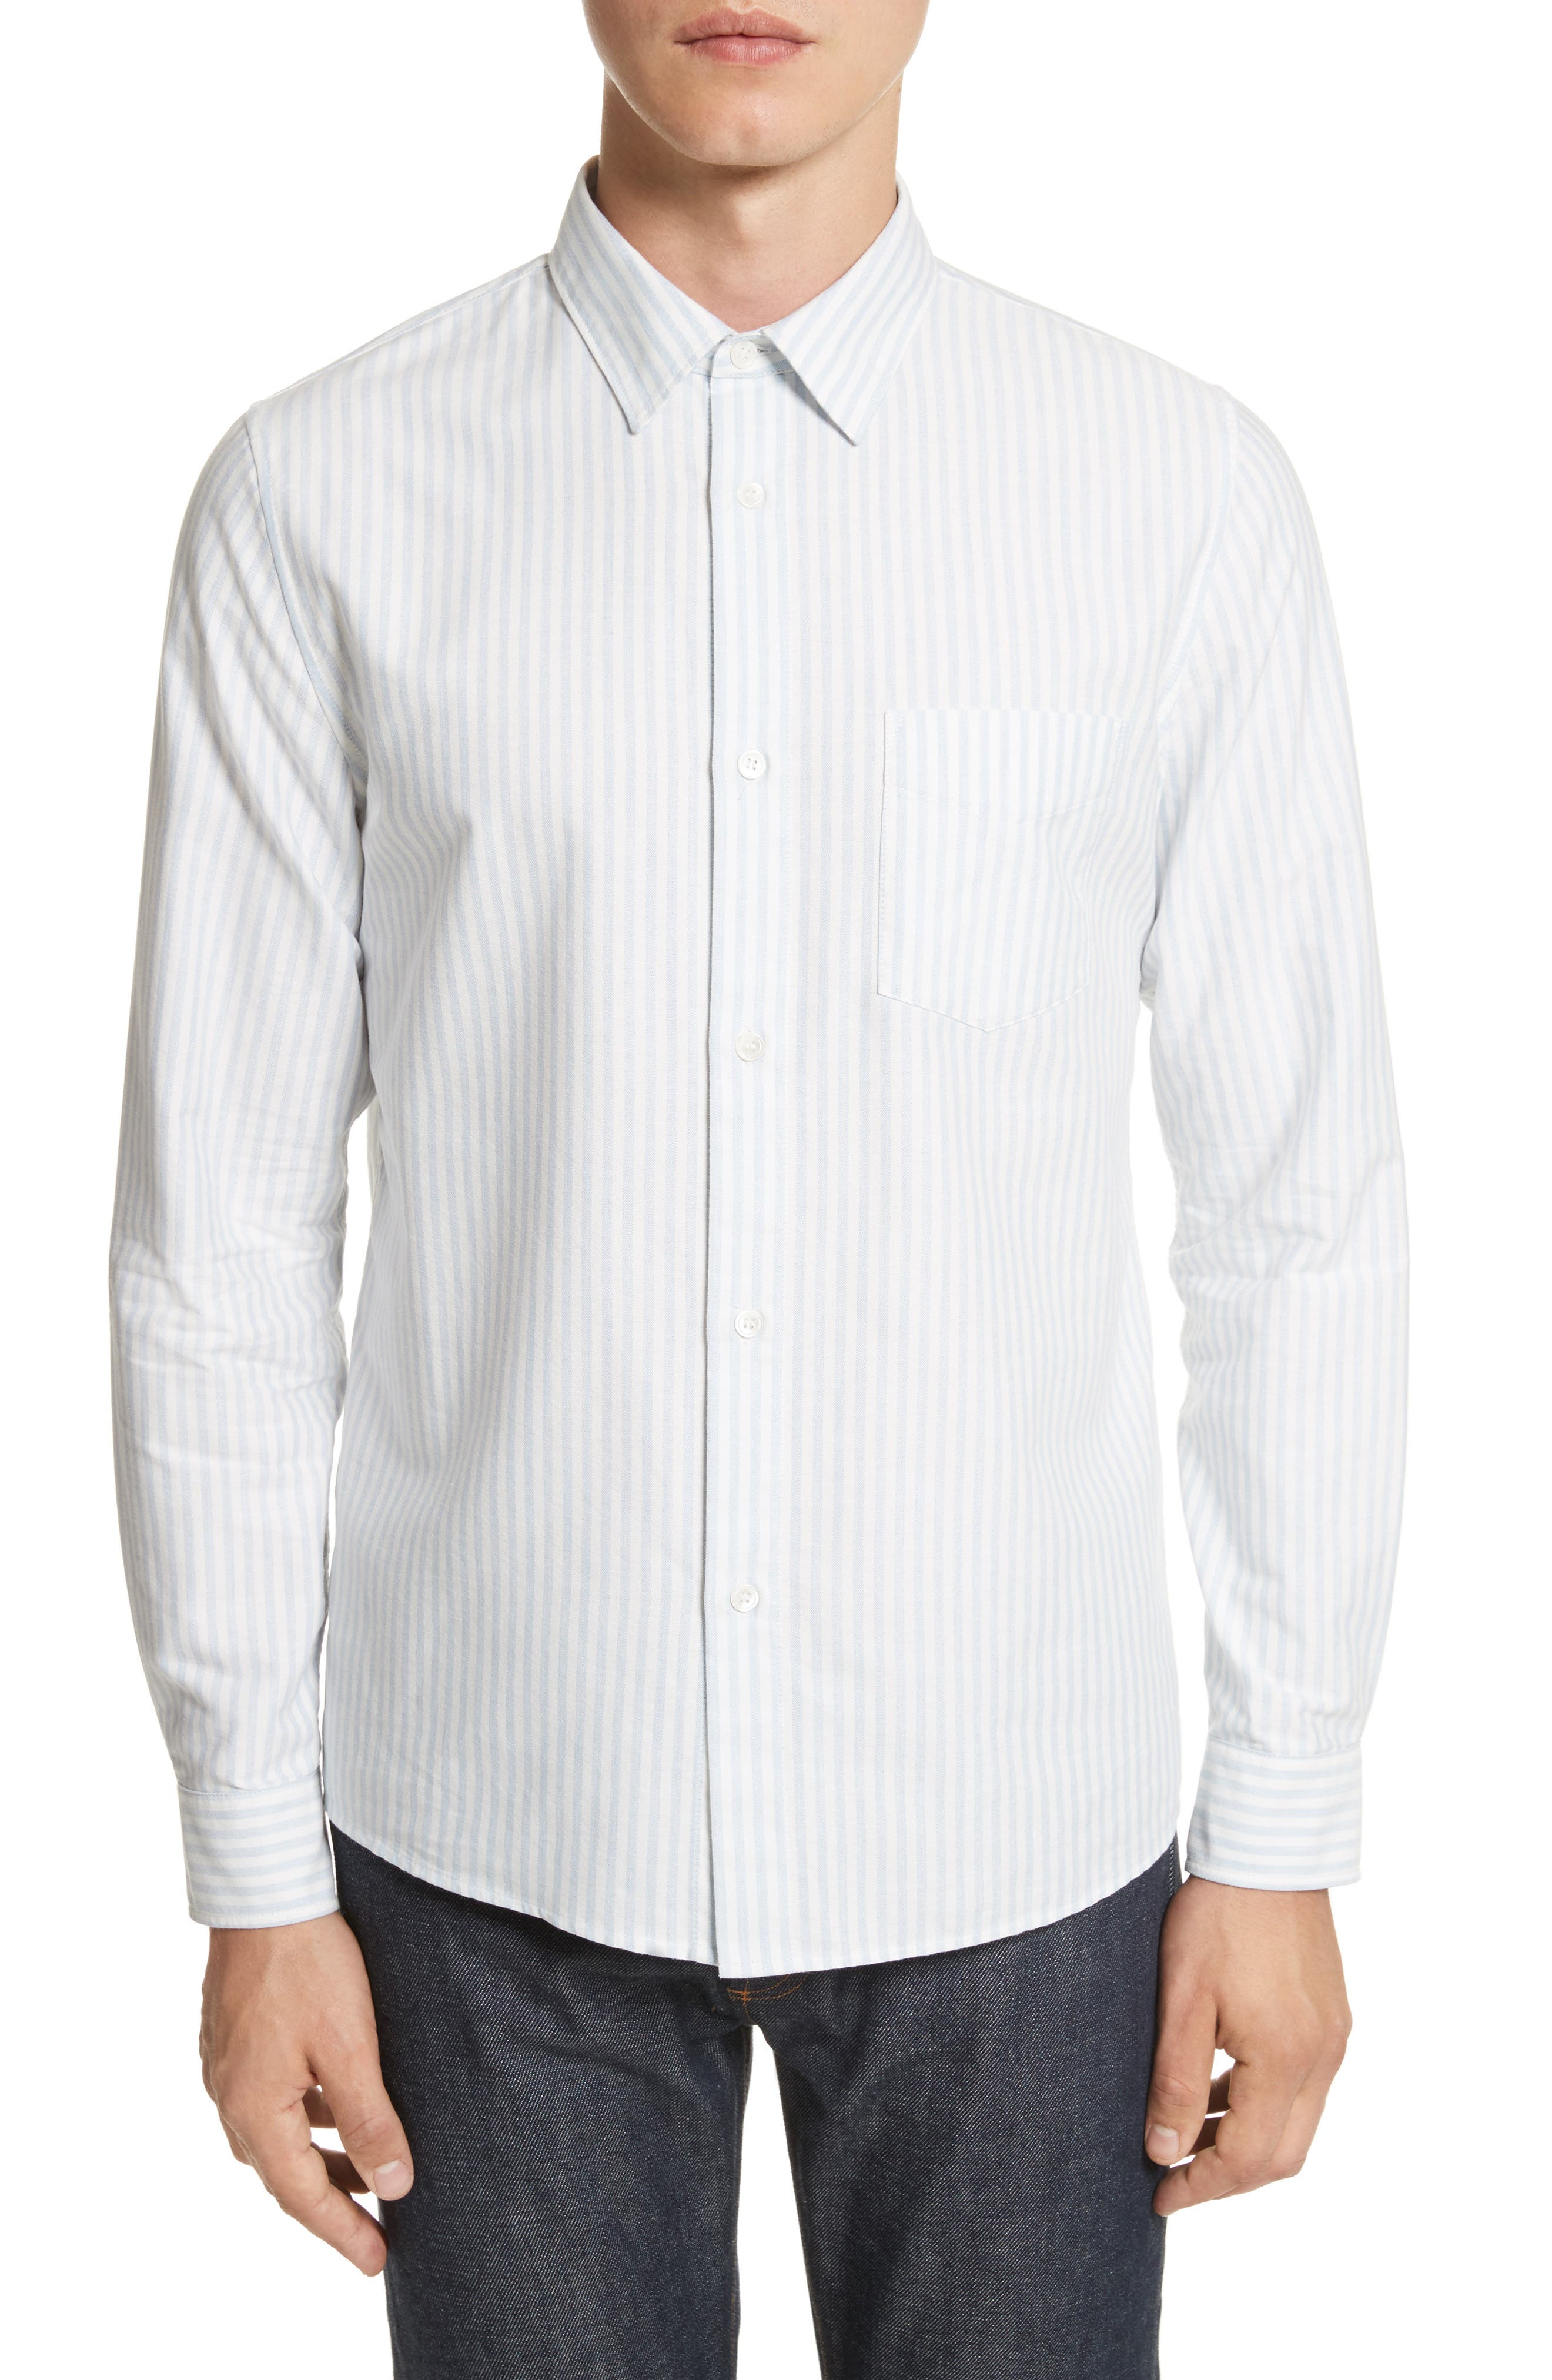 A.P.C. Oliver Stripe Oxford Shirt